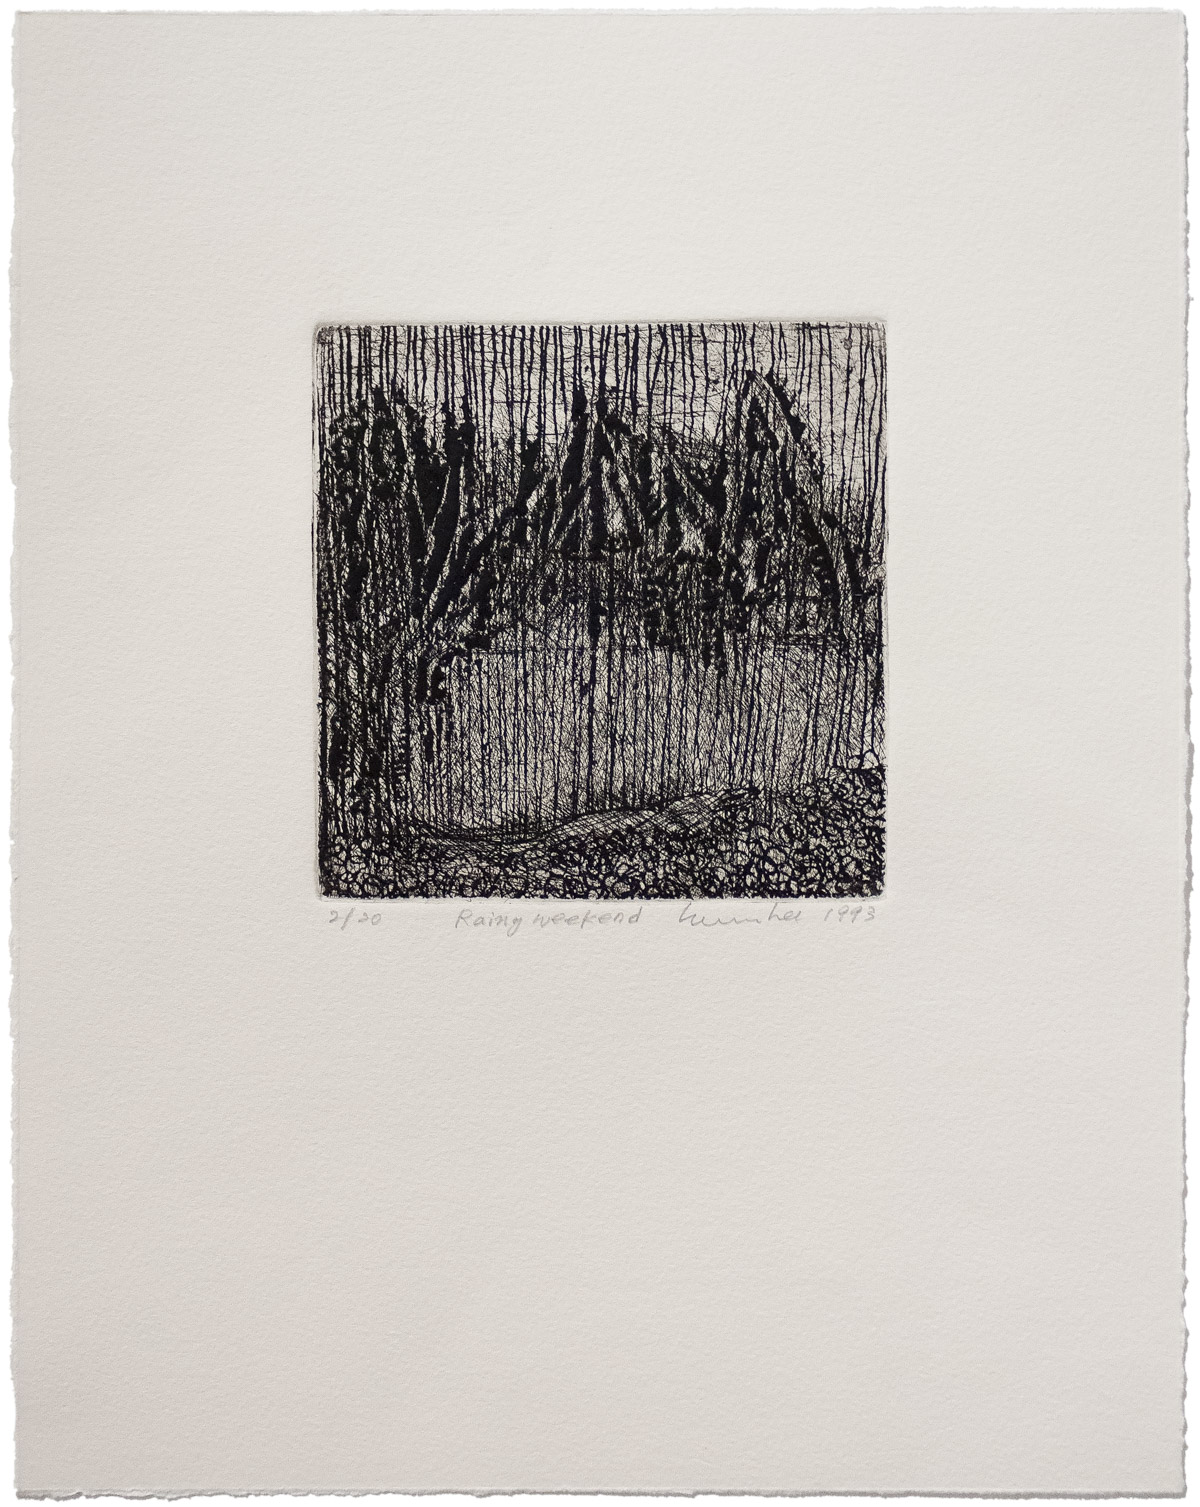 Soo Im Lee, Rainy Weekend, 1993, limited-edition etching on paper